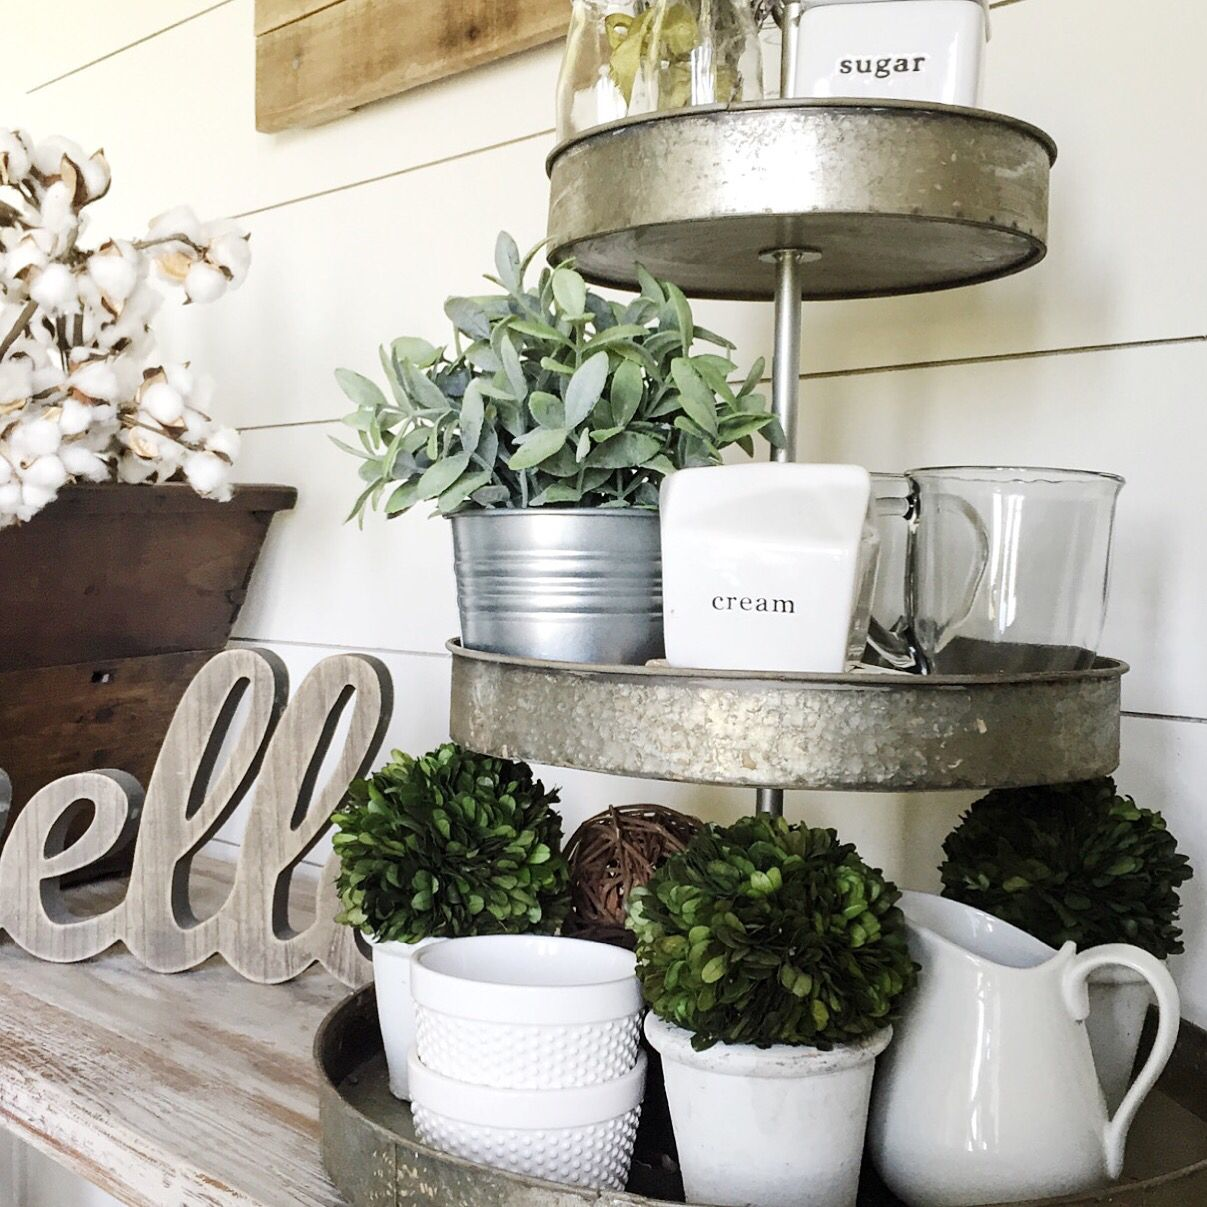 3 tiered galvanized tray with farmhouse decor